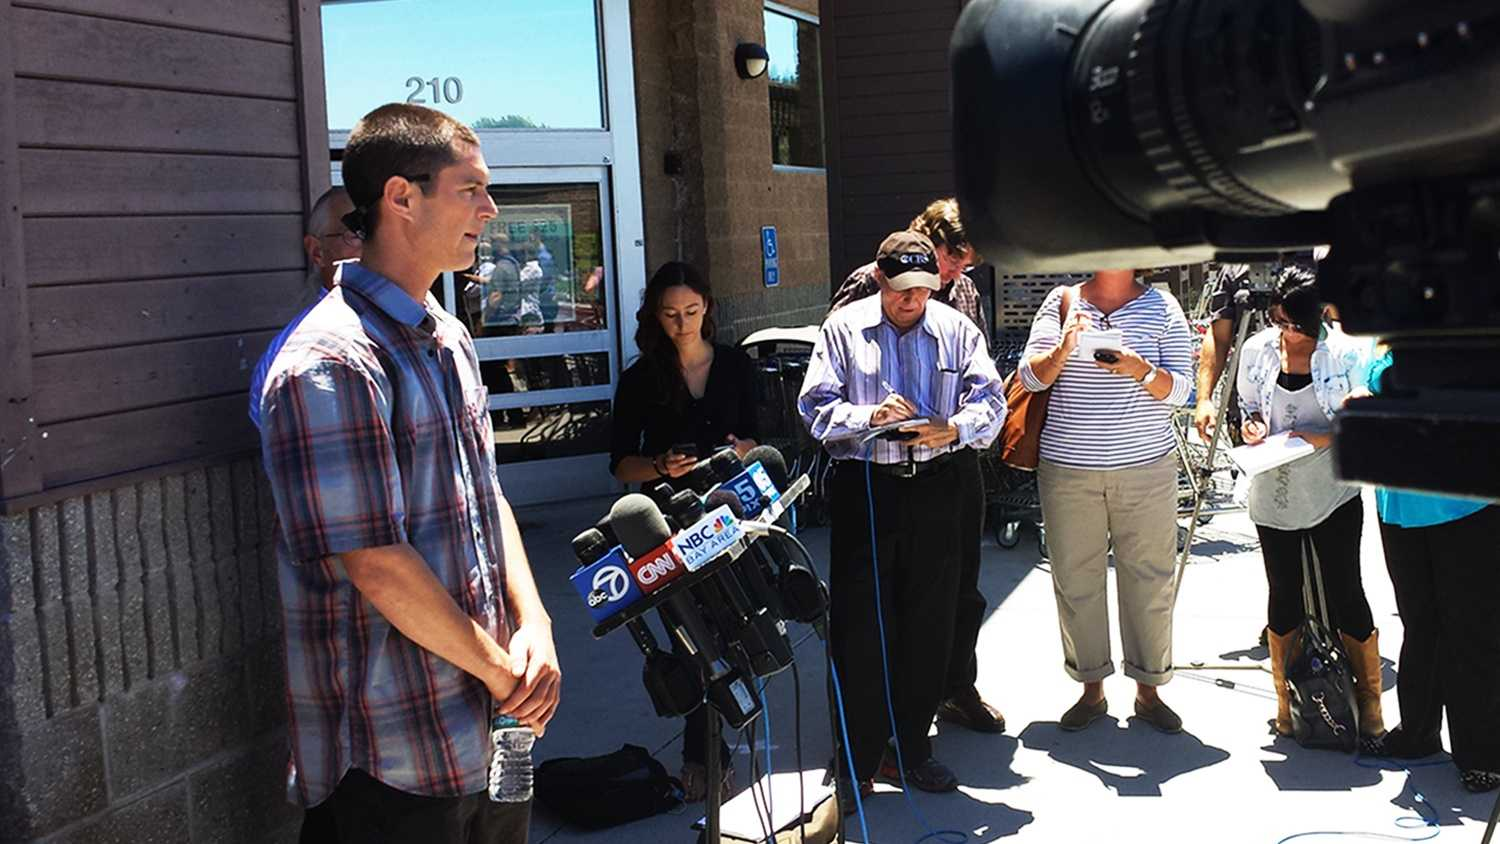 Elliot Stone, left, talks about what he witnessed during the San Francisco plane crash. (July 9, 2013)